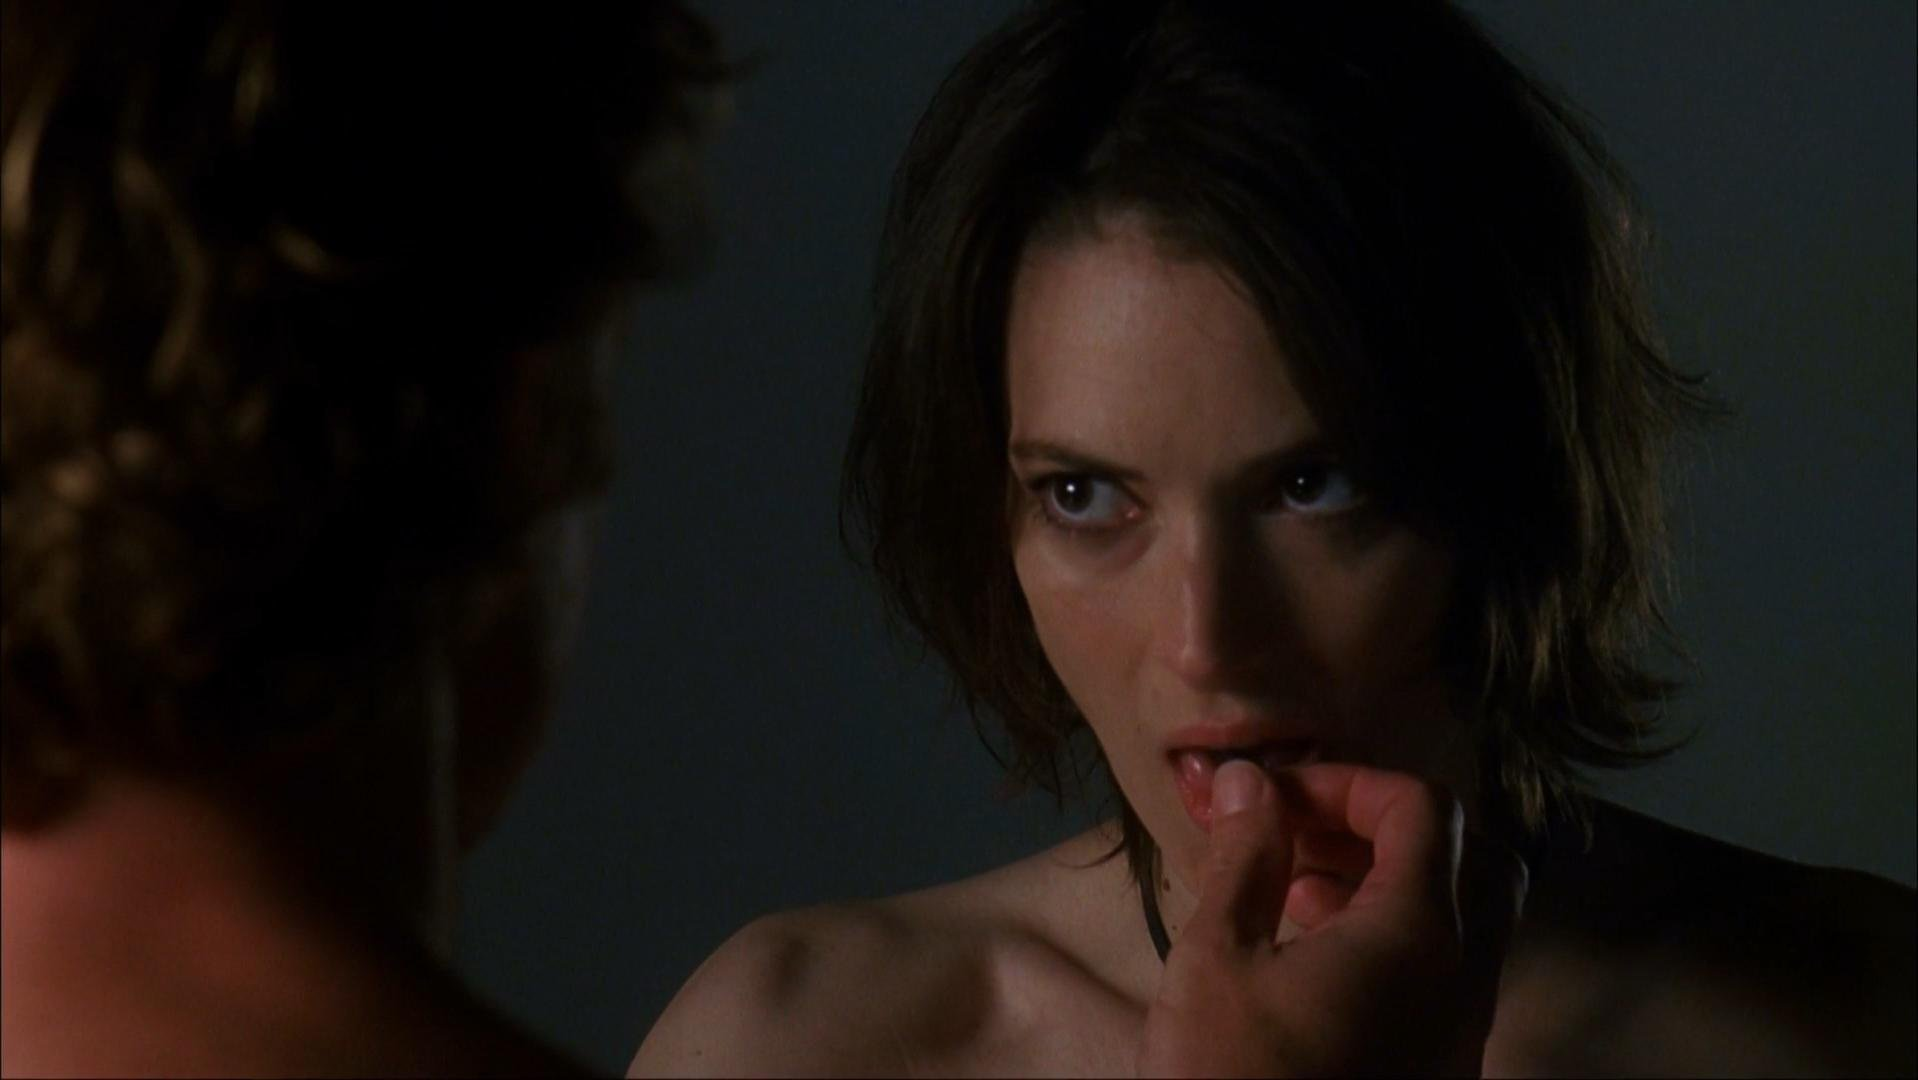 Winona ryder topless sex